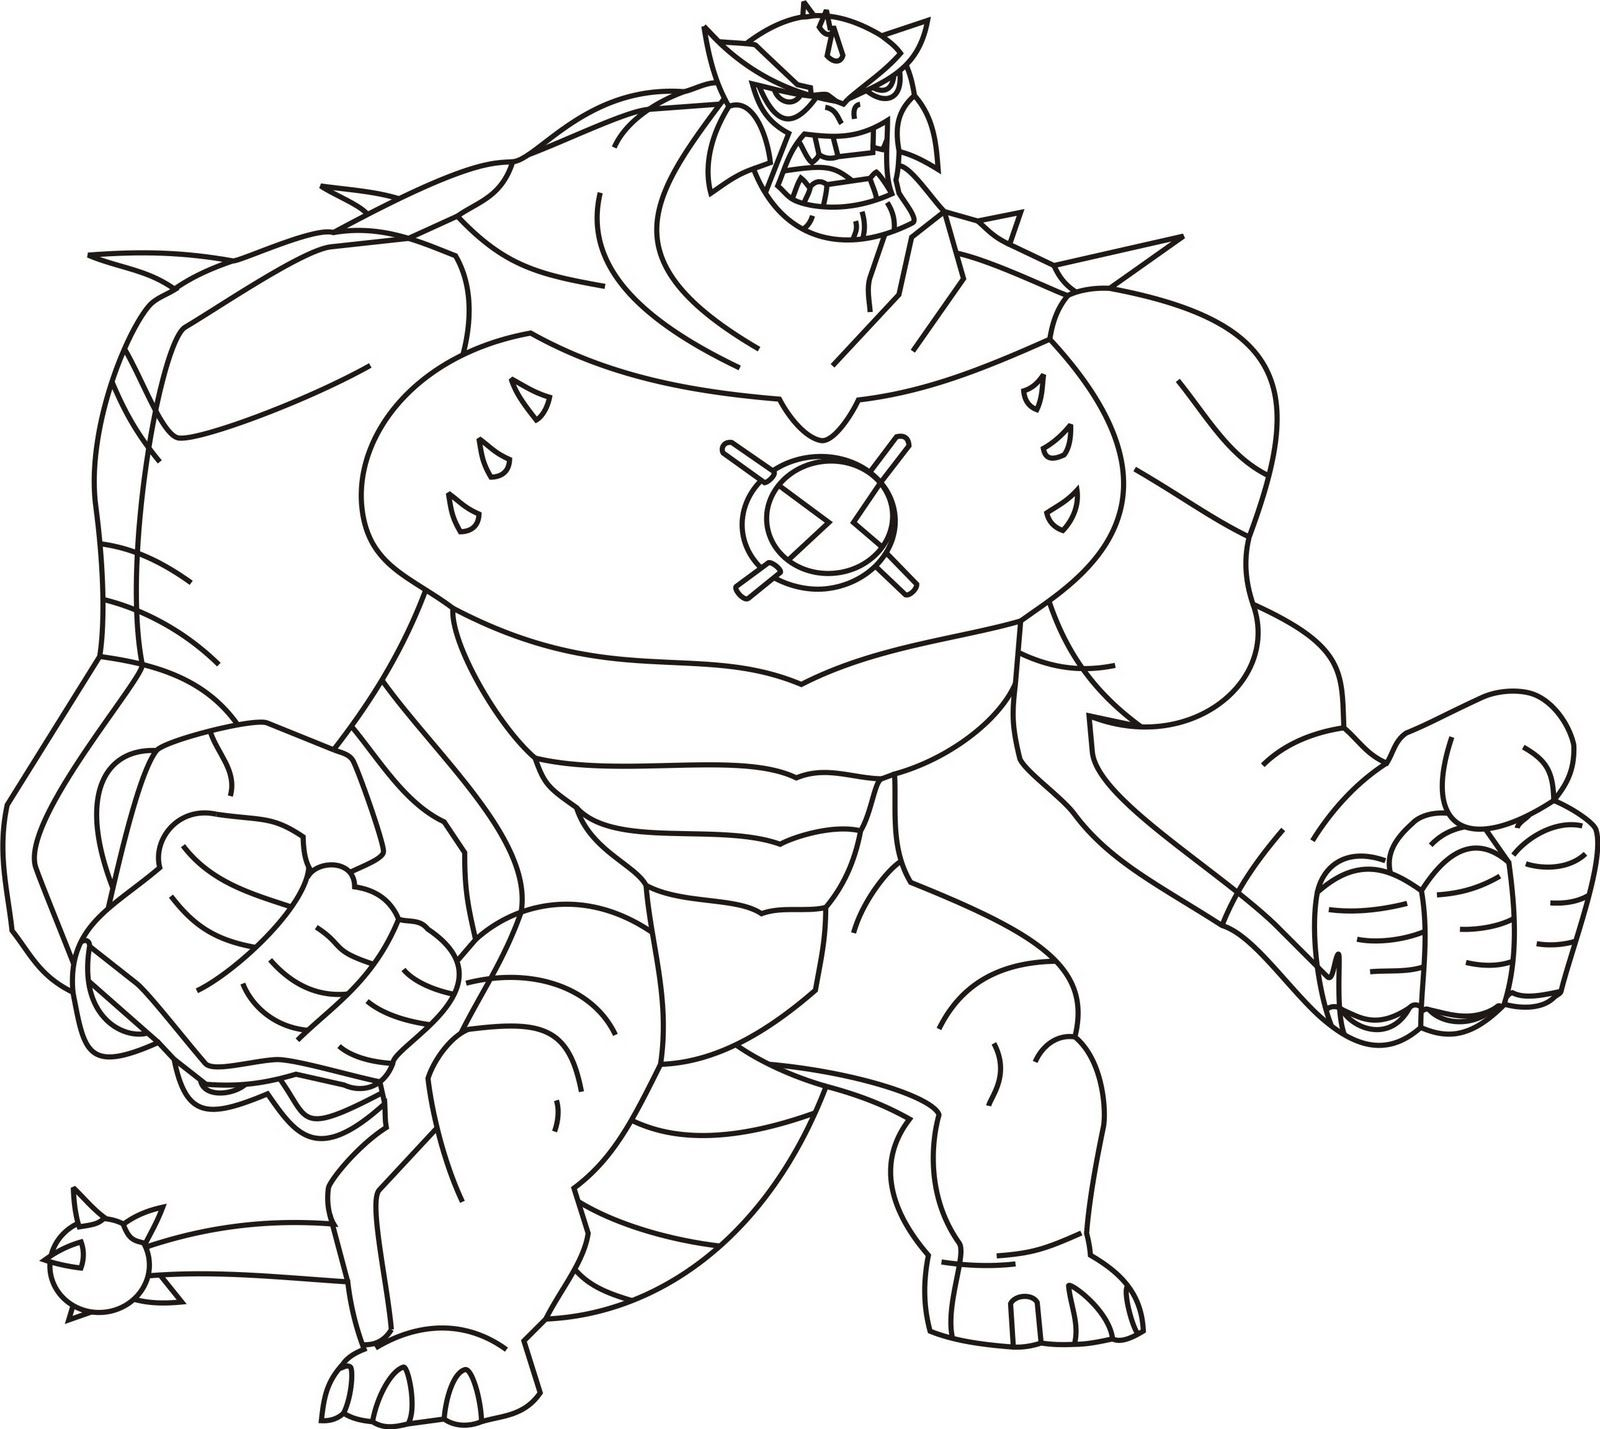 Ben 10 Coloring Pages Ultimate Aliens Only Coloring Pages Coloring Books Coloring Pages Bunny Coloring Pages